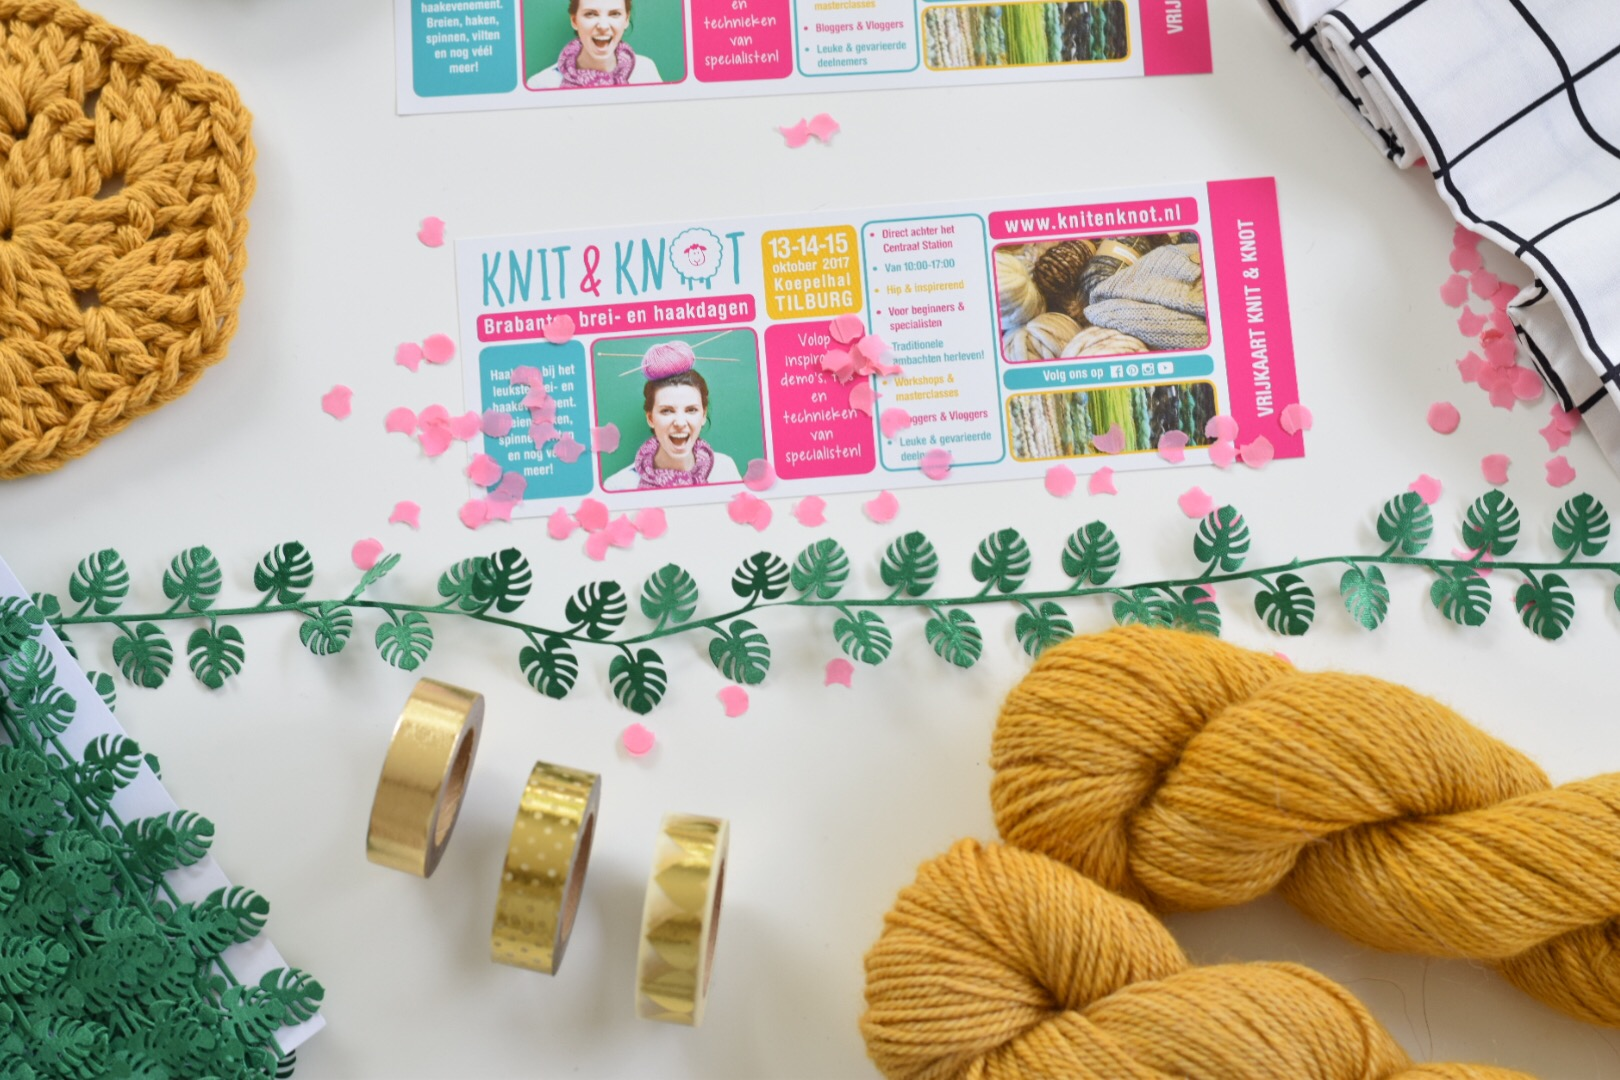 KNIT & KNOT beurs in Tilburg (give-away)